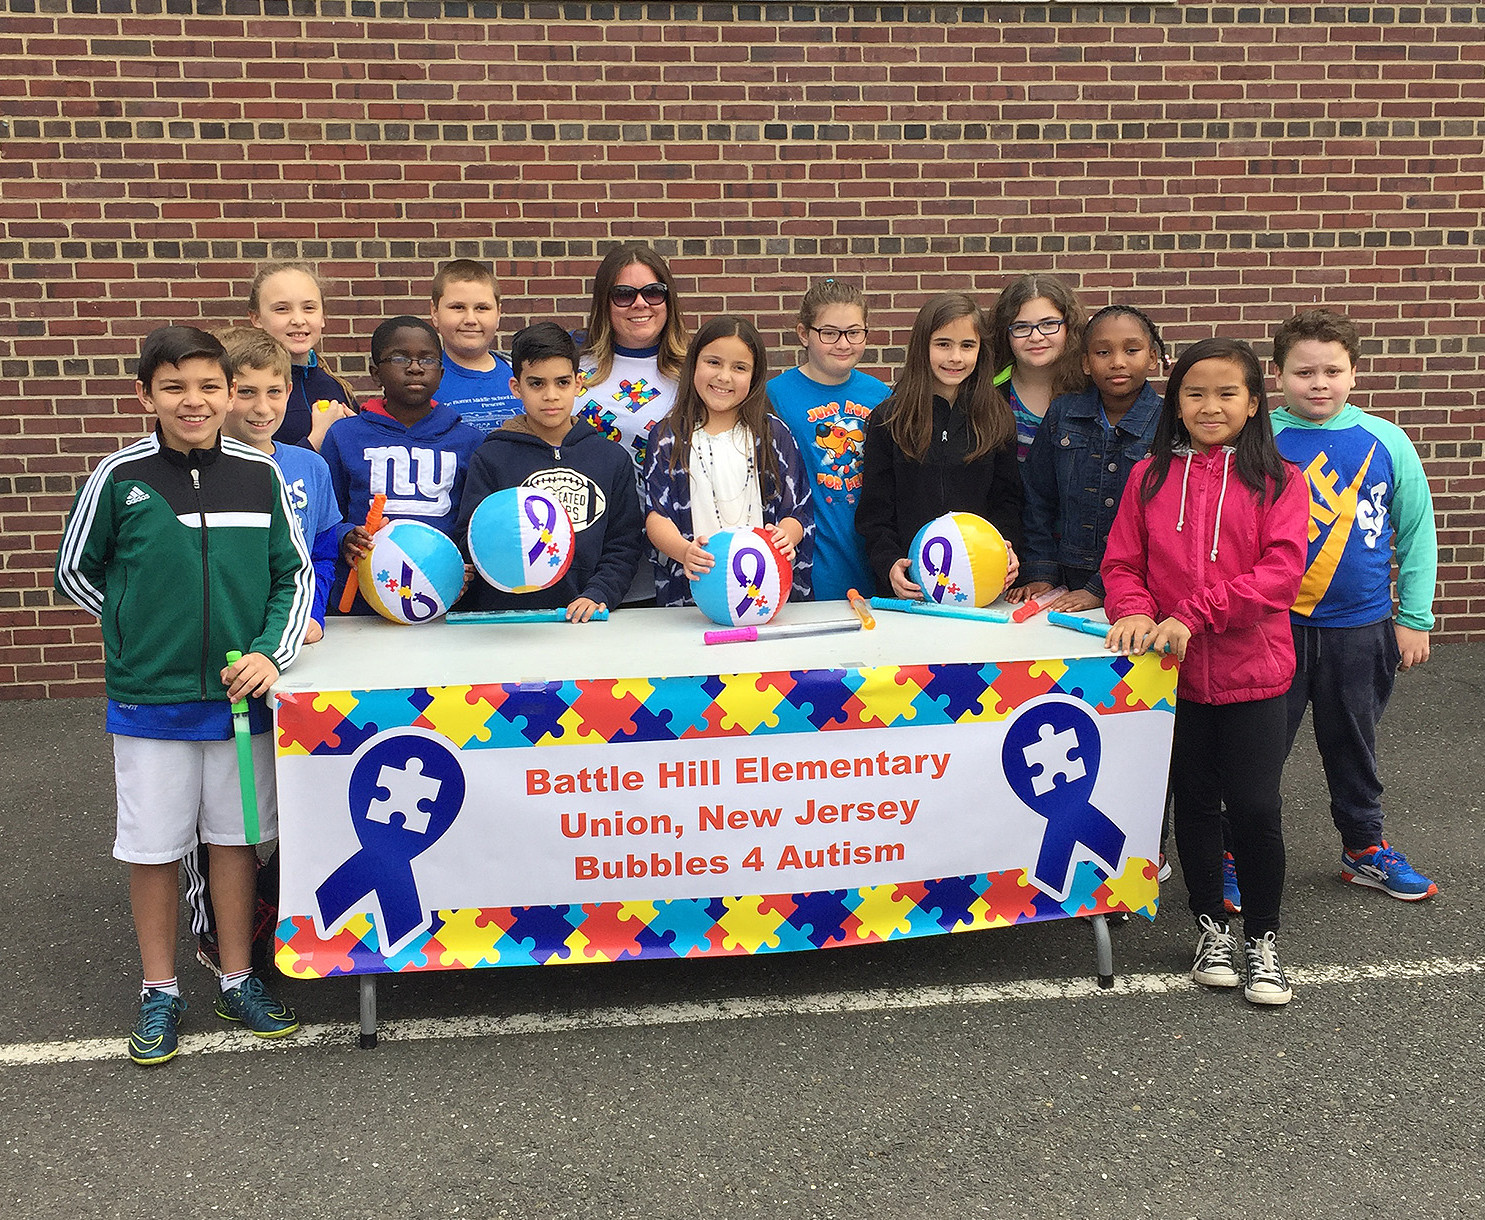 (above) Students of Battle Hill Elementary School, in Union Township Bubbles 4 Autism 2016.